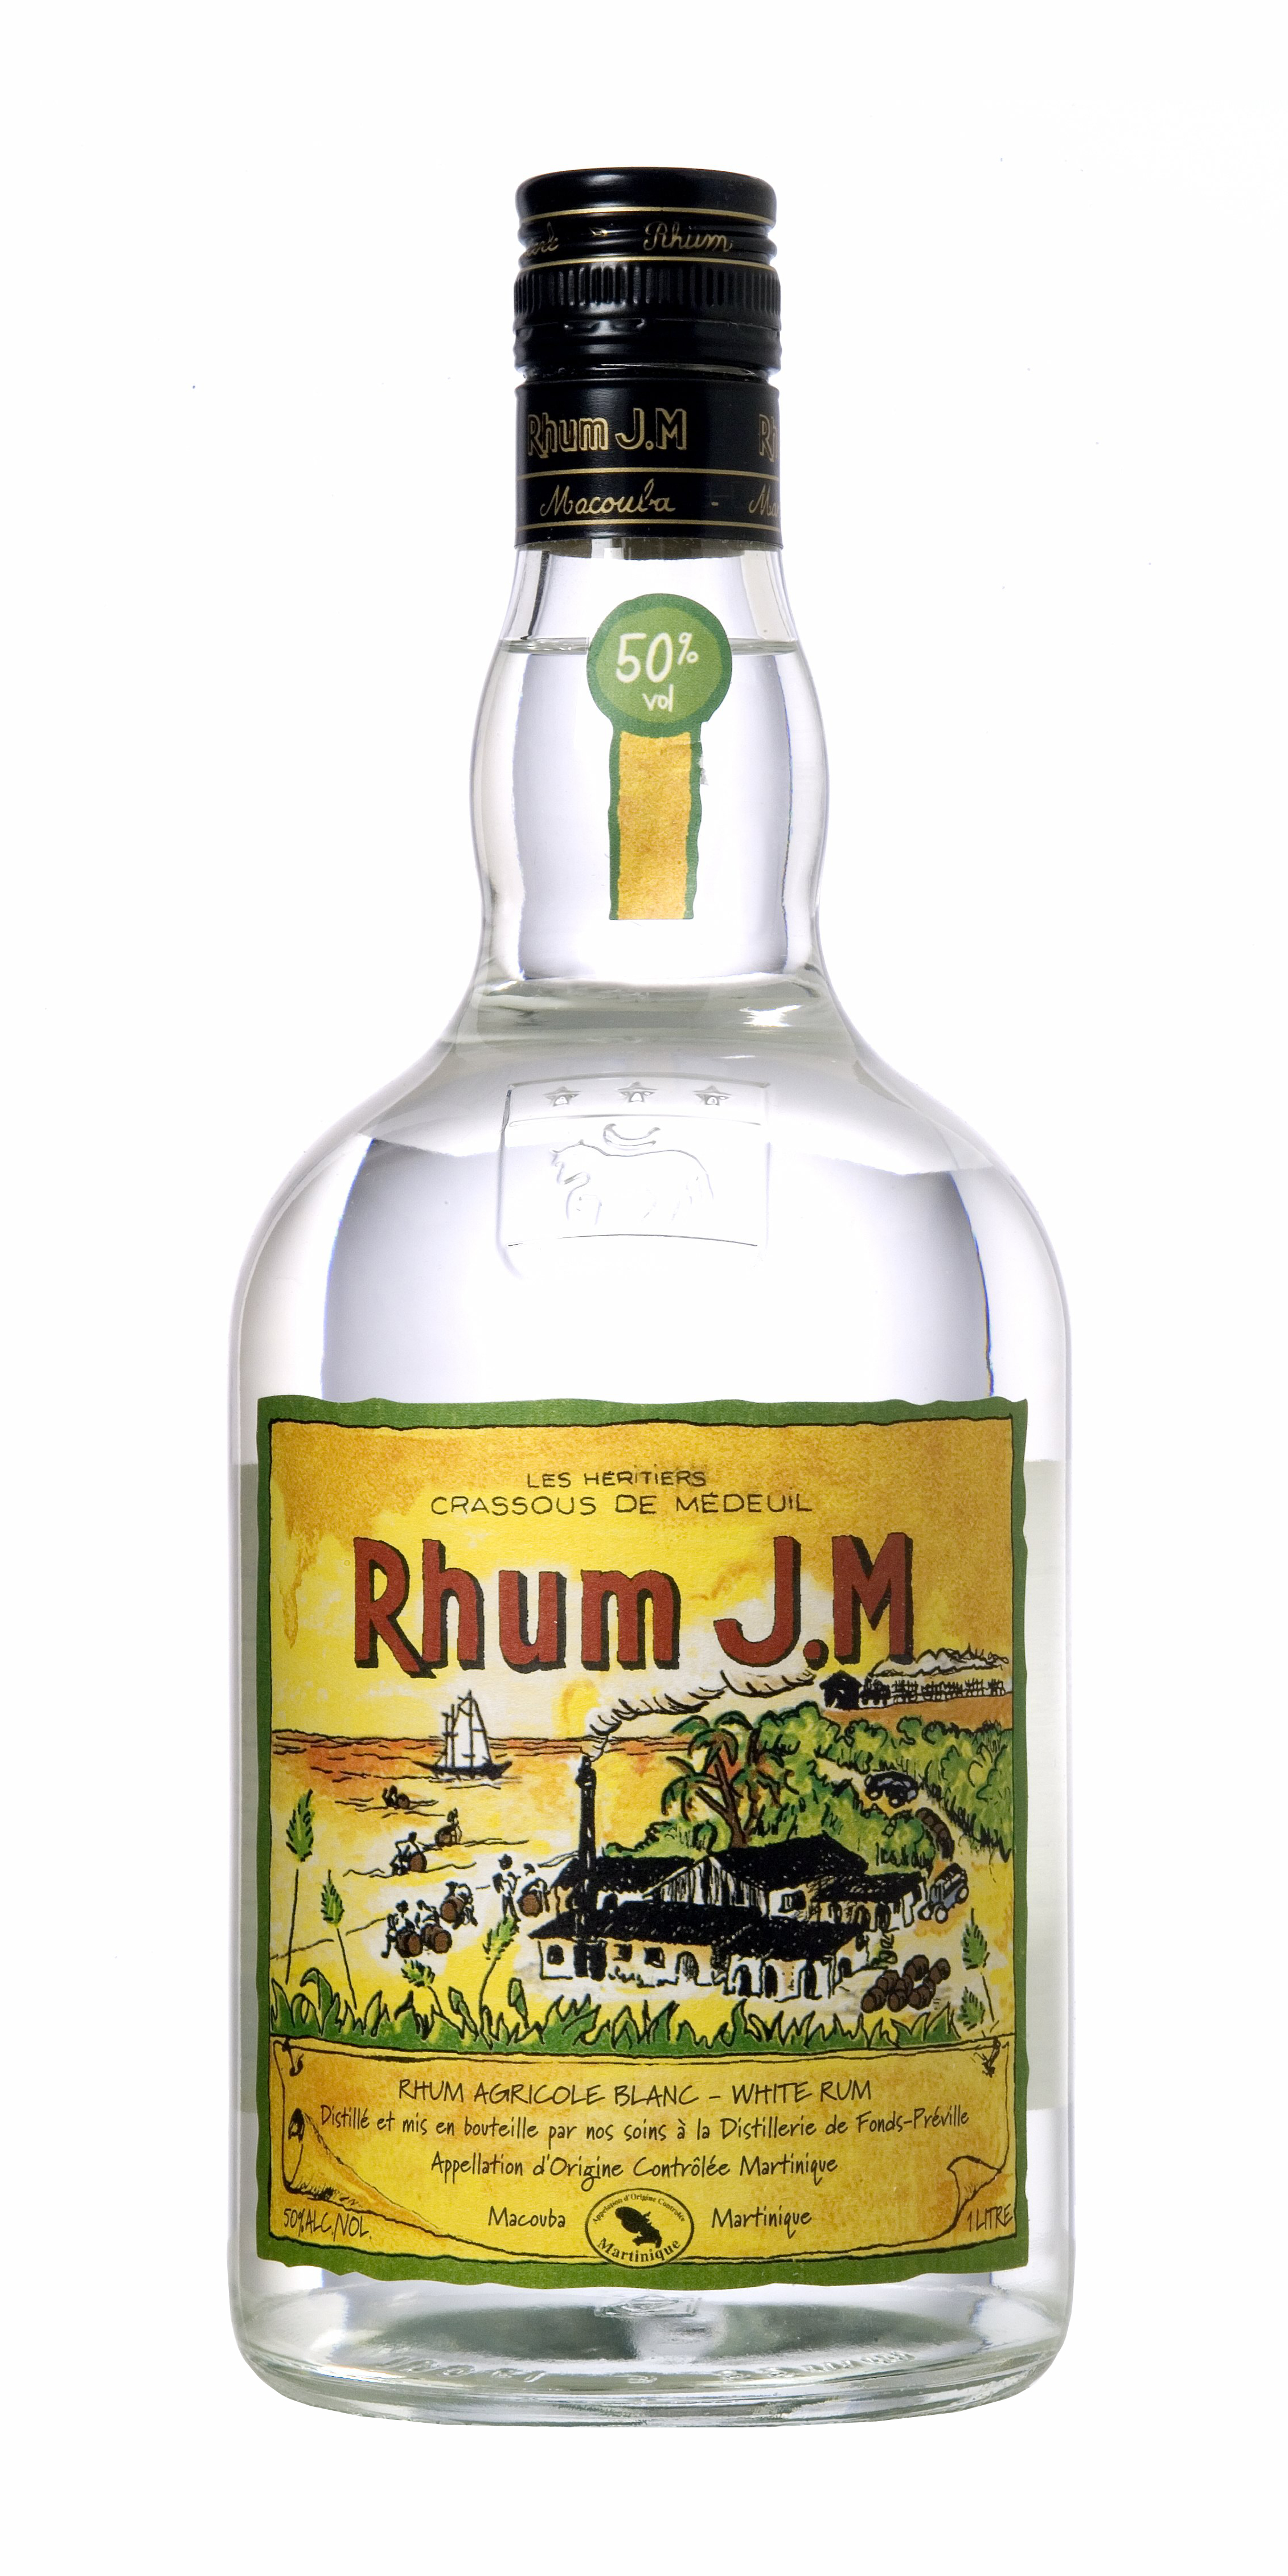 rhum jm blac 100 proof.jpg